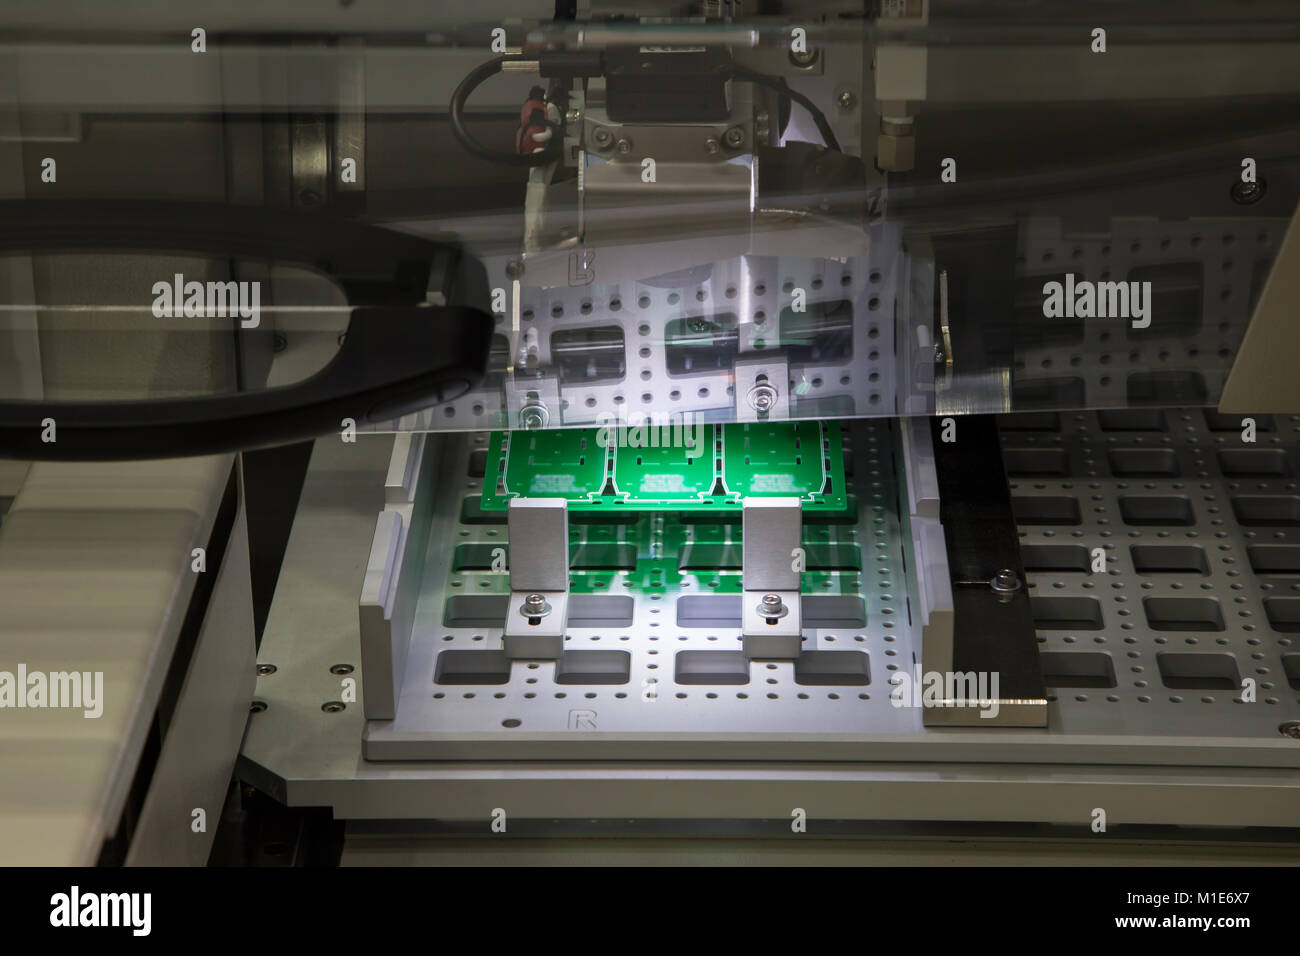 PCB loading / unloading for in-line PCB router - Stock Image